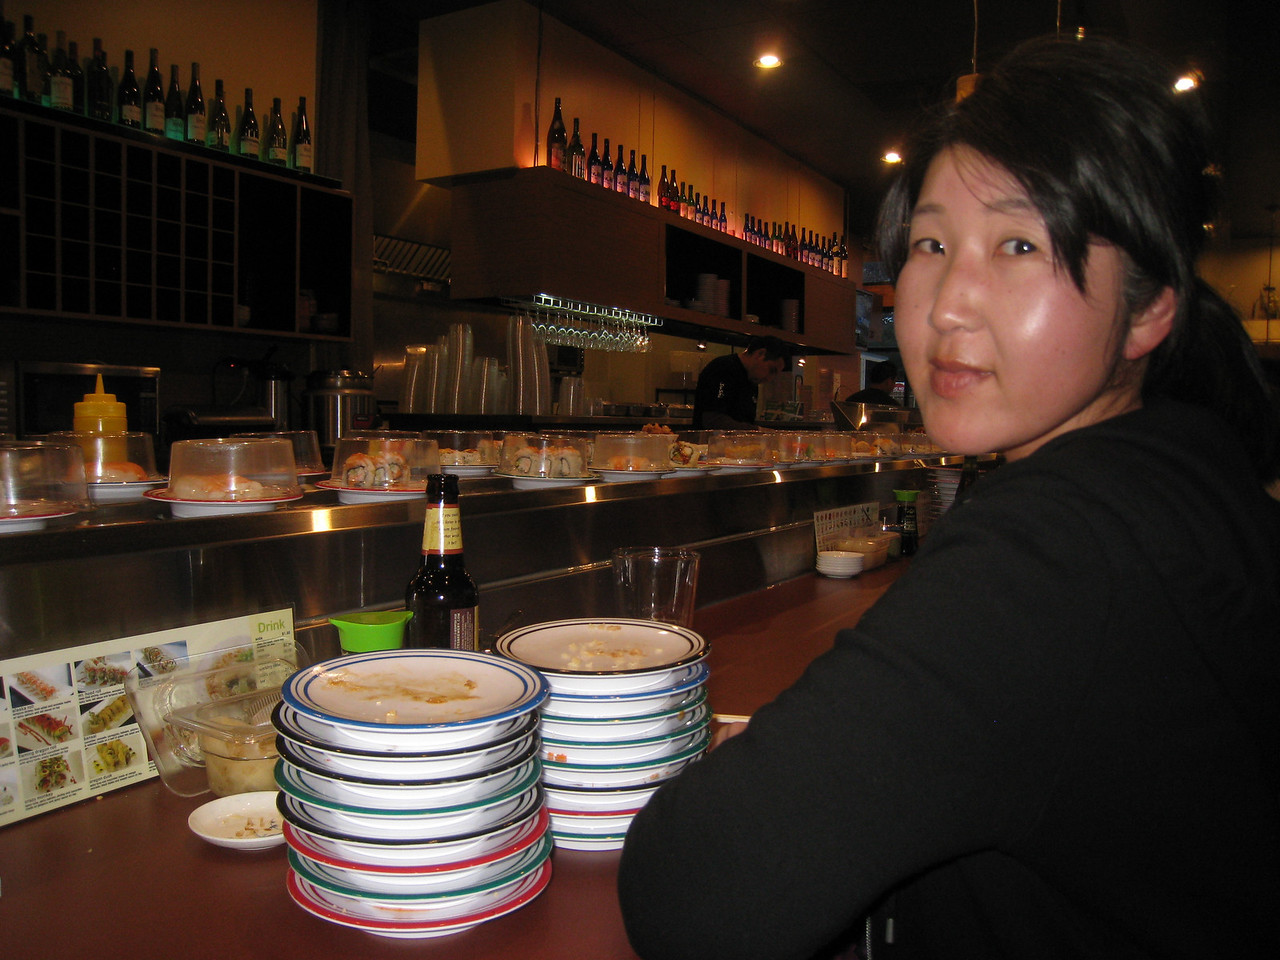 16 plates Chiyoko???? Celebrating our 5th year aniversary with conveyor Sushi!